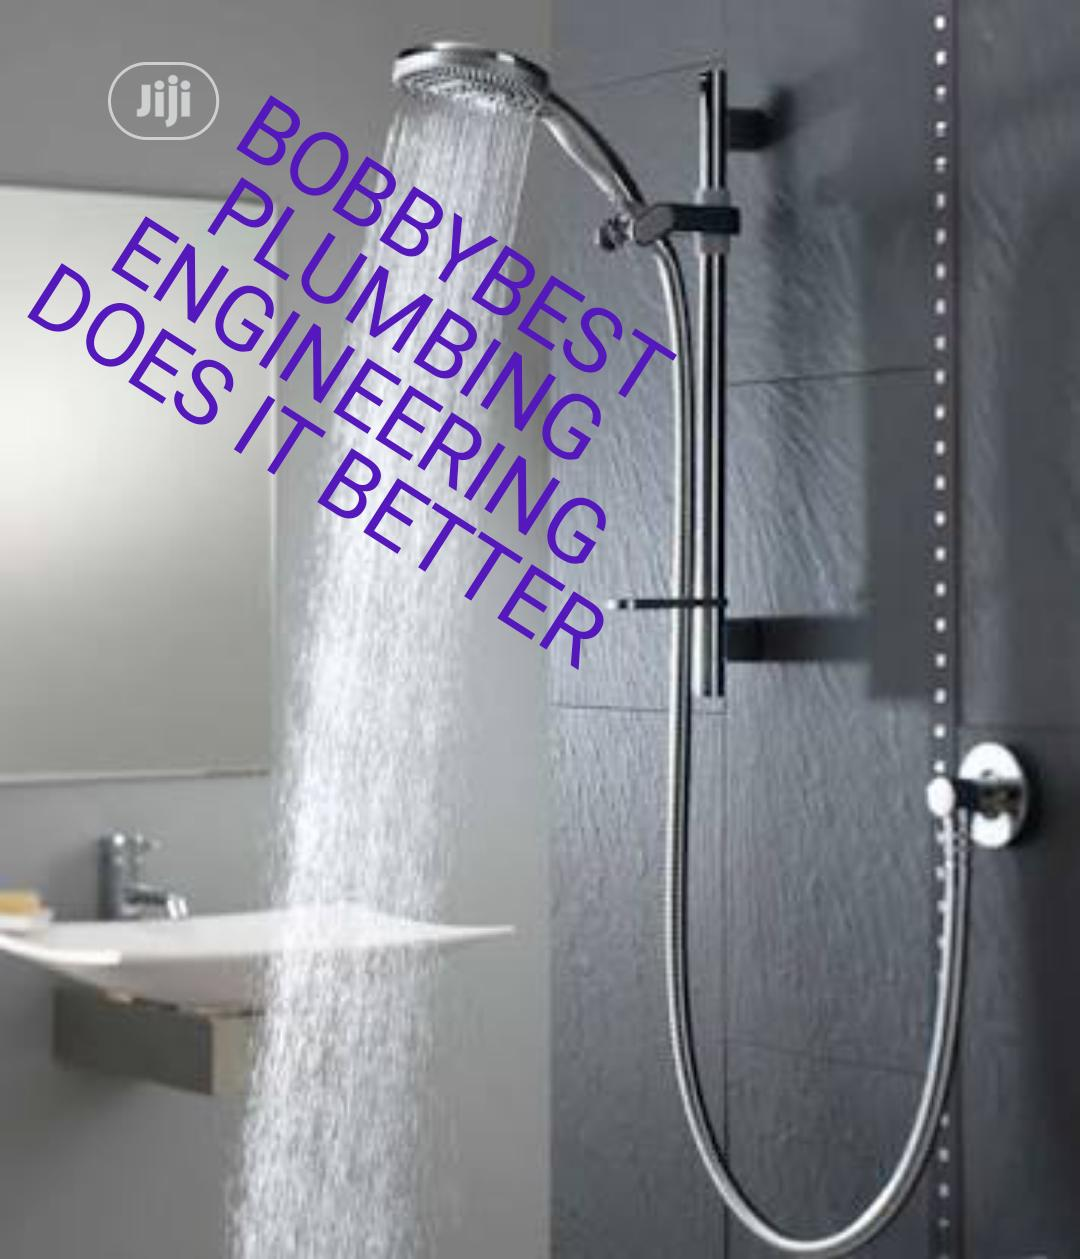 Affordable Digital Plumbing Services